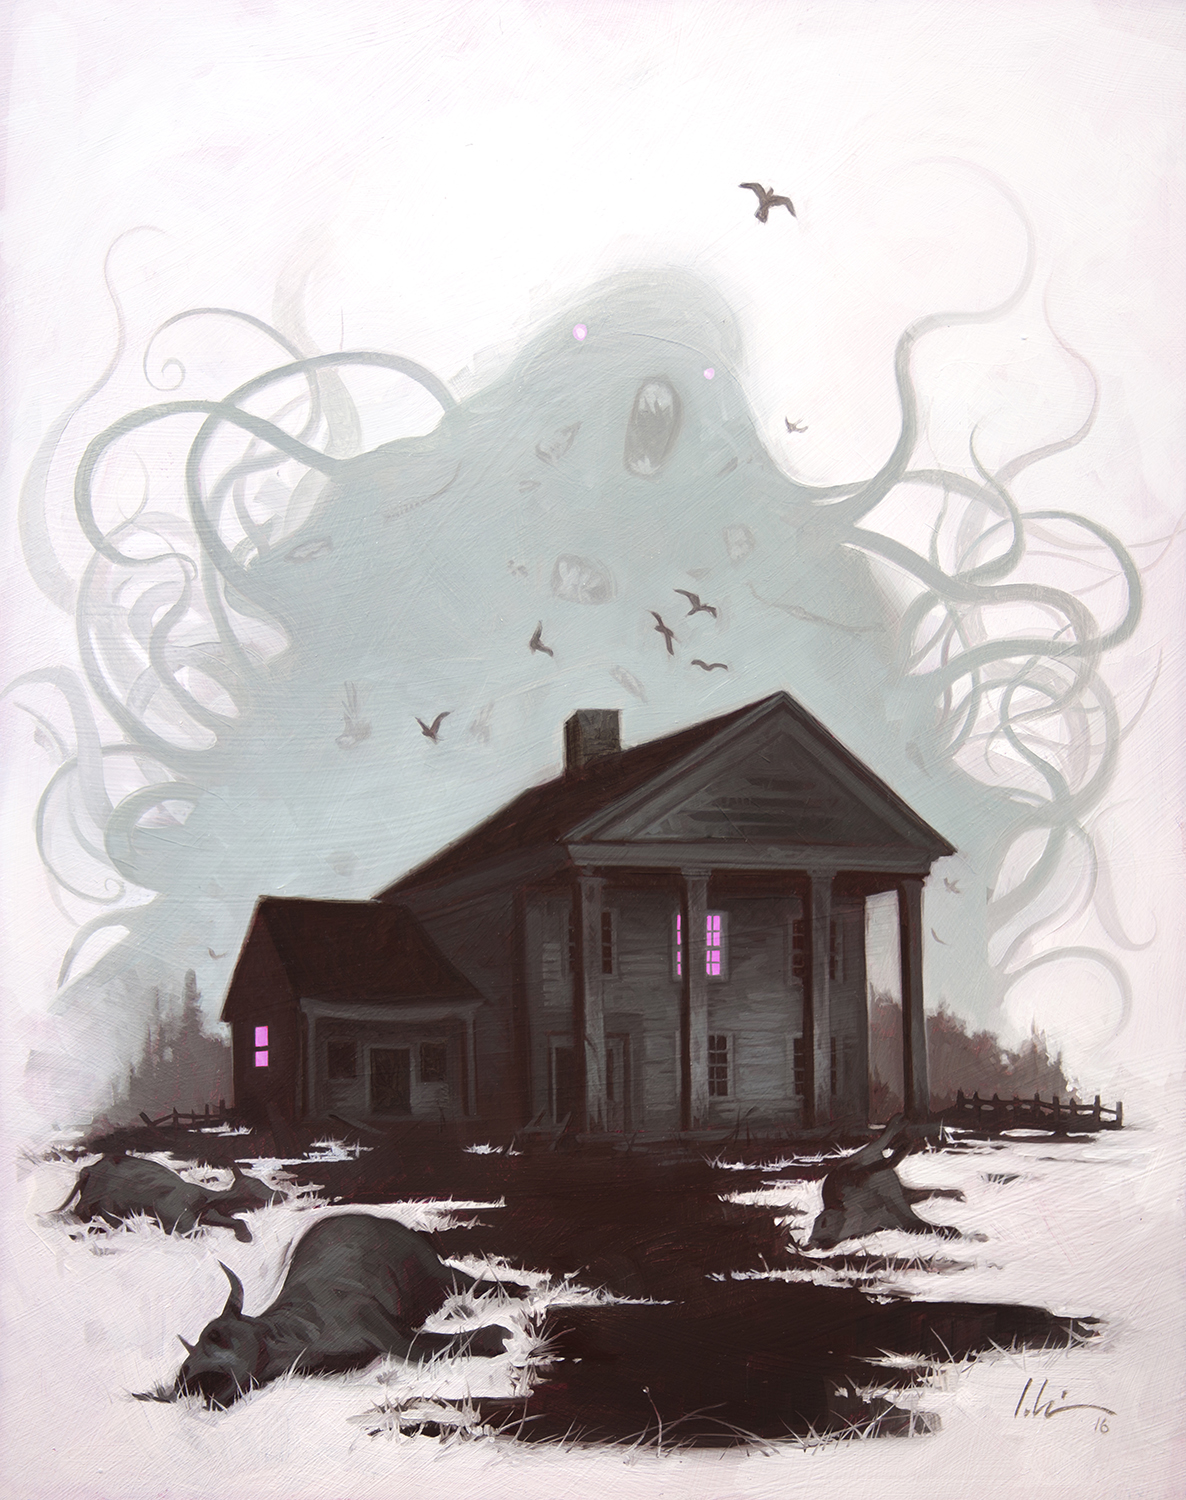 lovecraft, dunwich, hp lovecraft, horror, cthullu